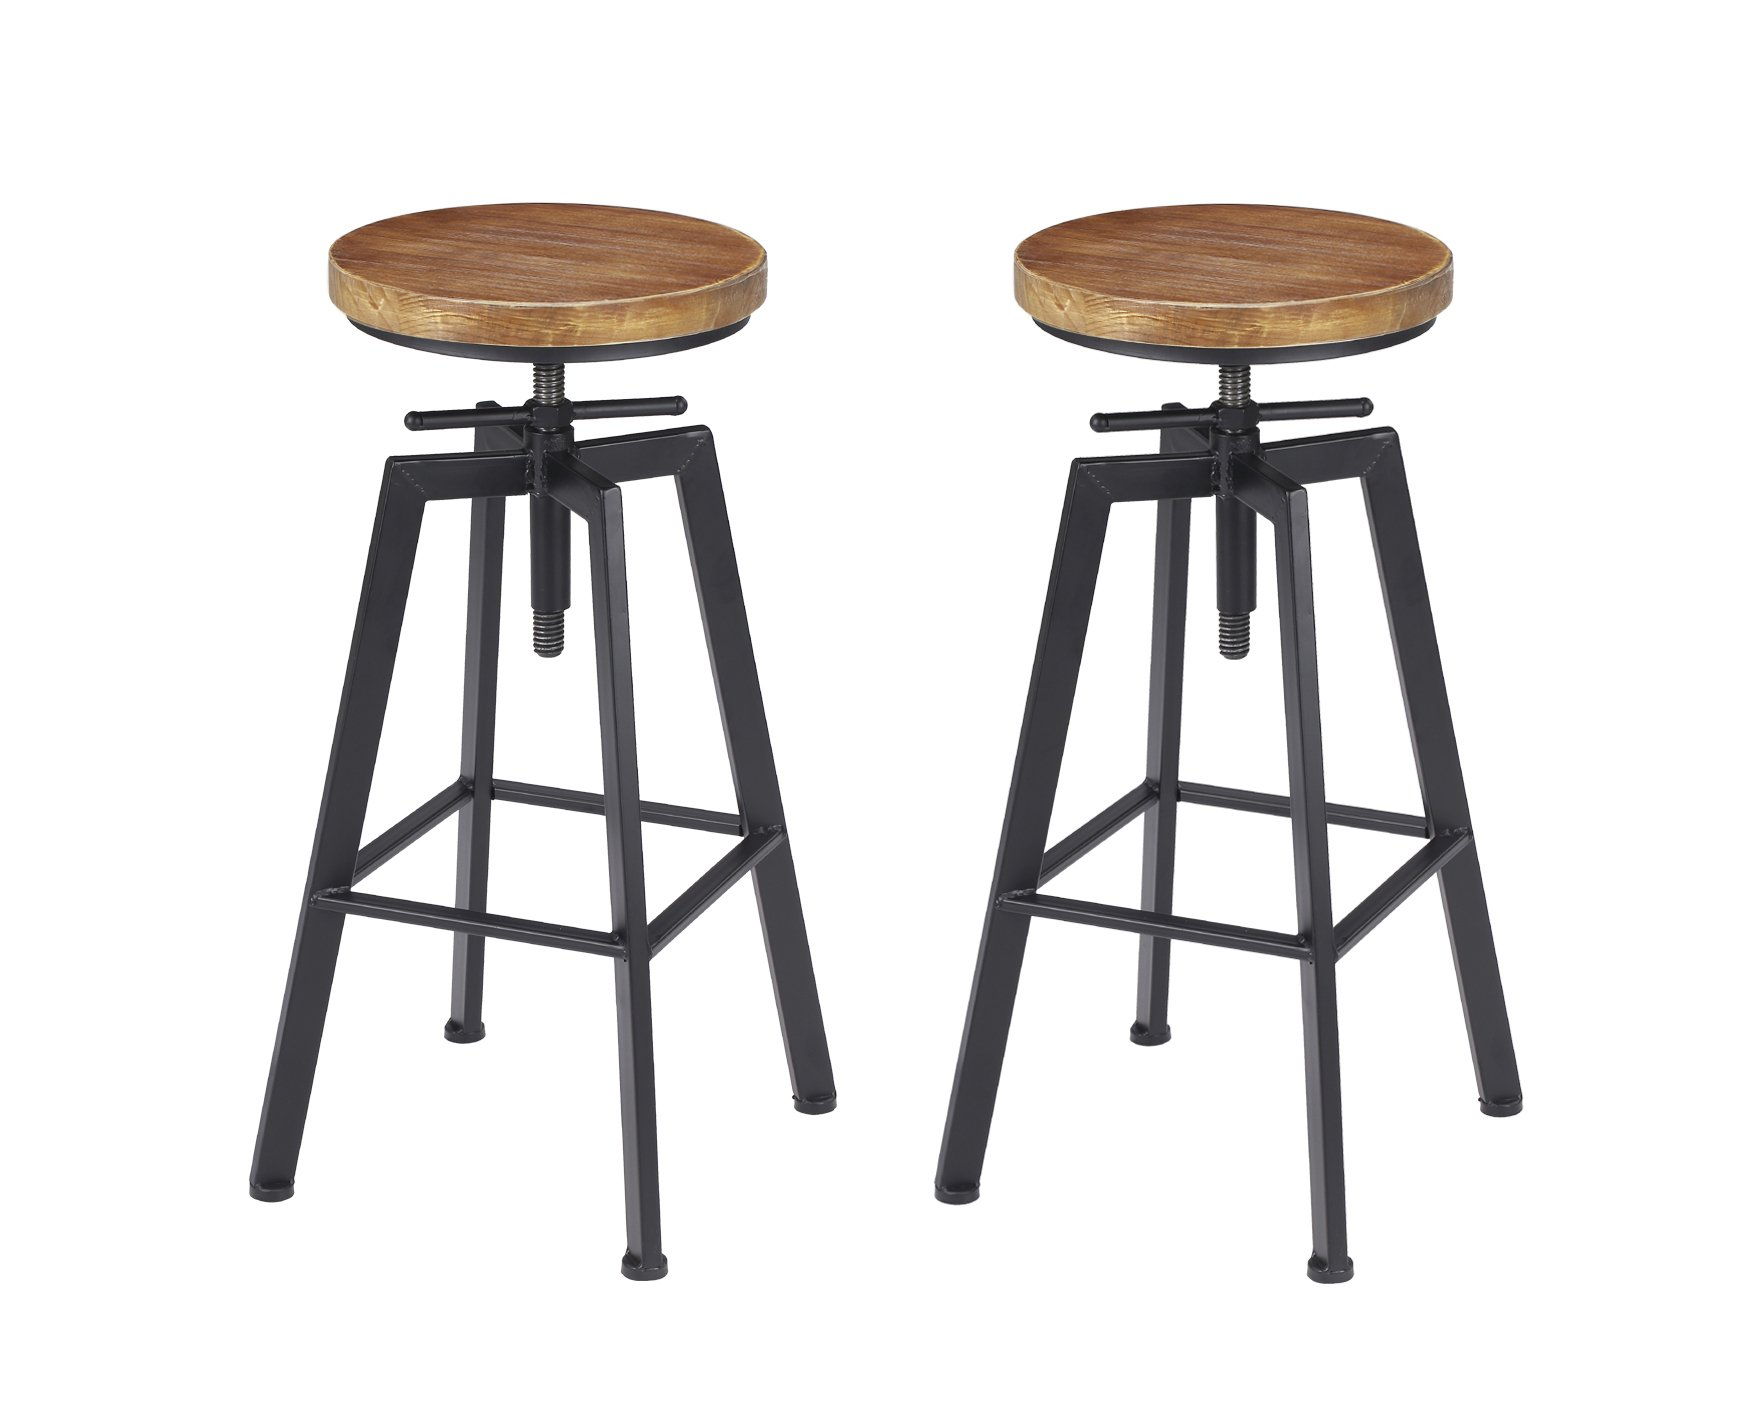 VILAVITA Bar Stools Set of 2, Swivel Counter Height Bar Chair - 24.8'' to 28.8'' Adjustable Height, Retro Finish Industrial Style Wood Barstools